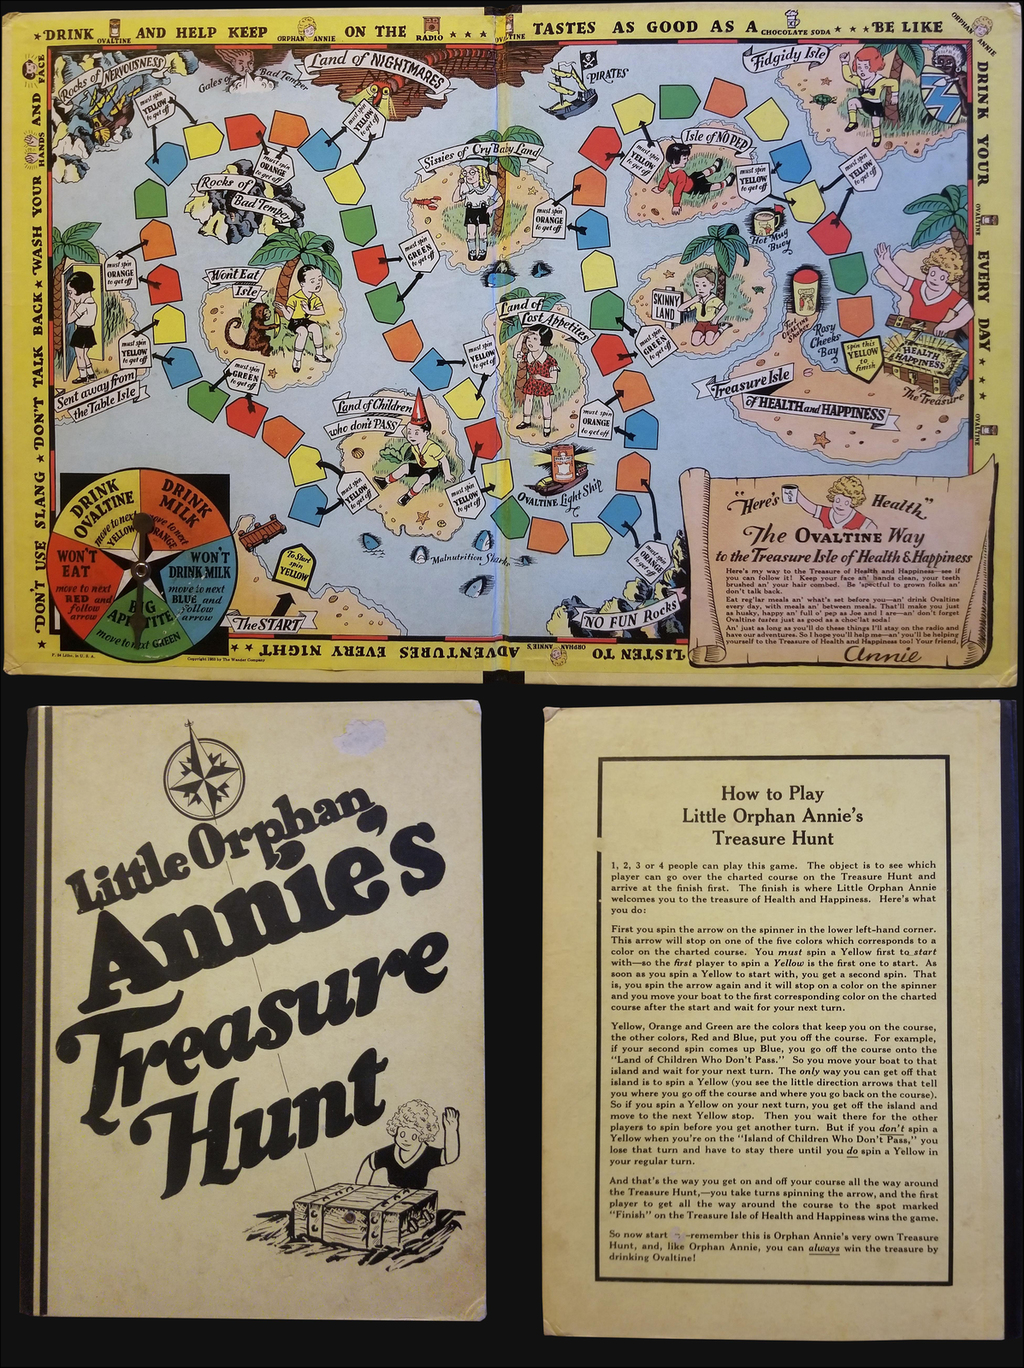 Little Orphan Annie's Treasure Hunt. By Wander Company